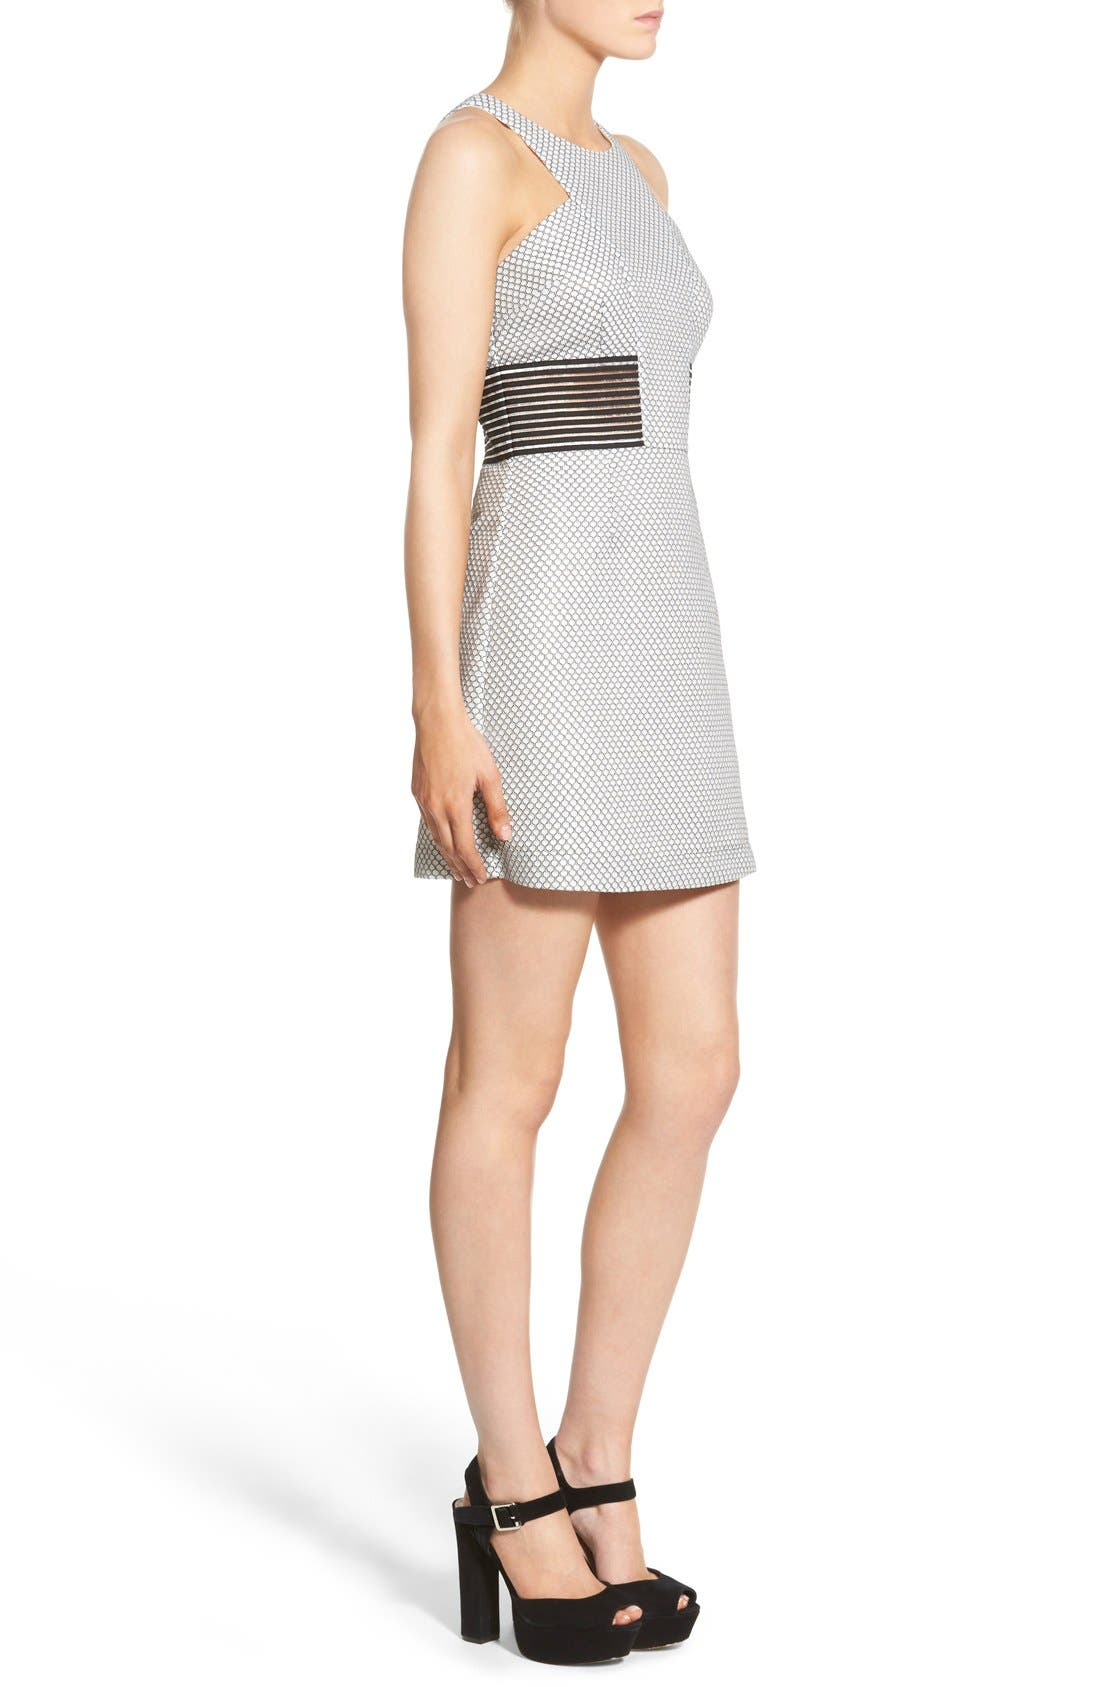 STOREE, Mesh Inset Body-Con Dress, Alternate thumbnail 3, color, 101